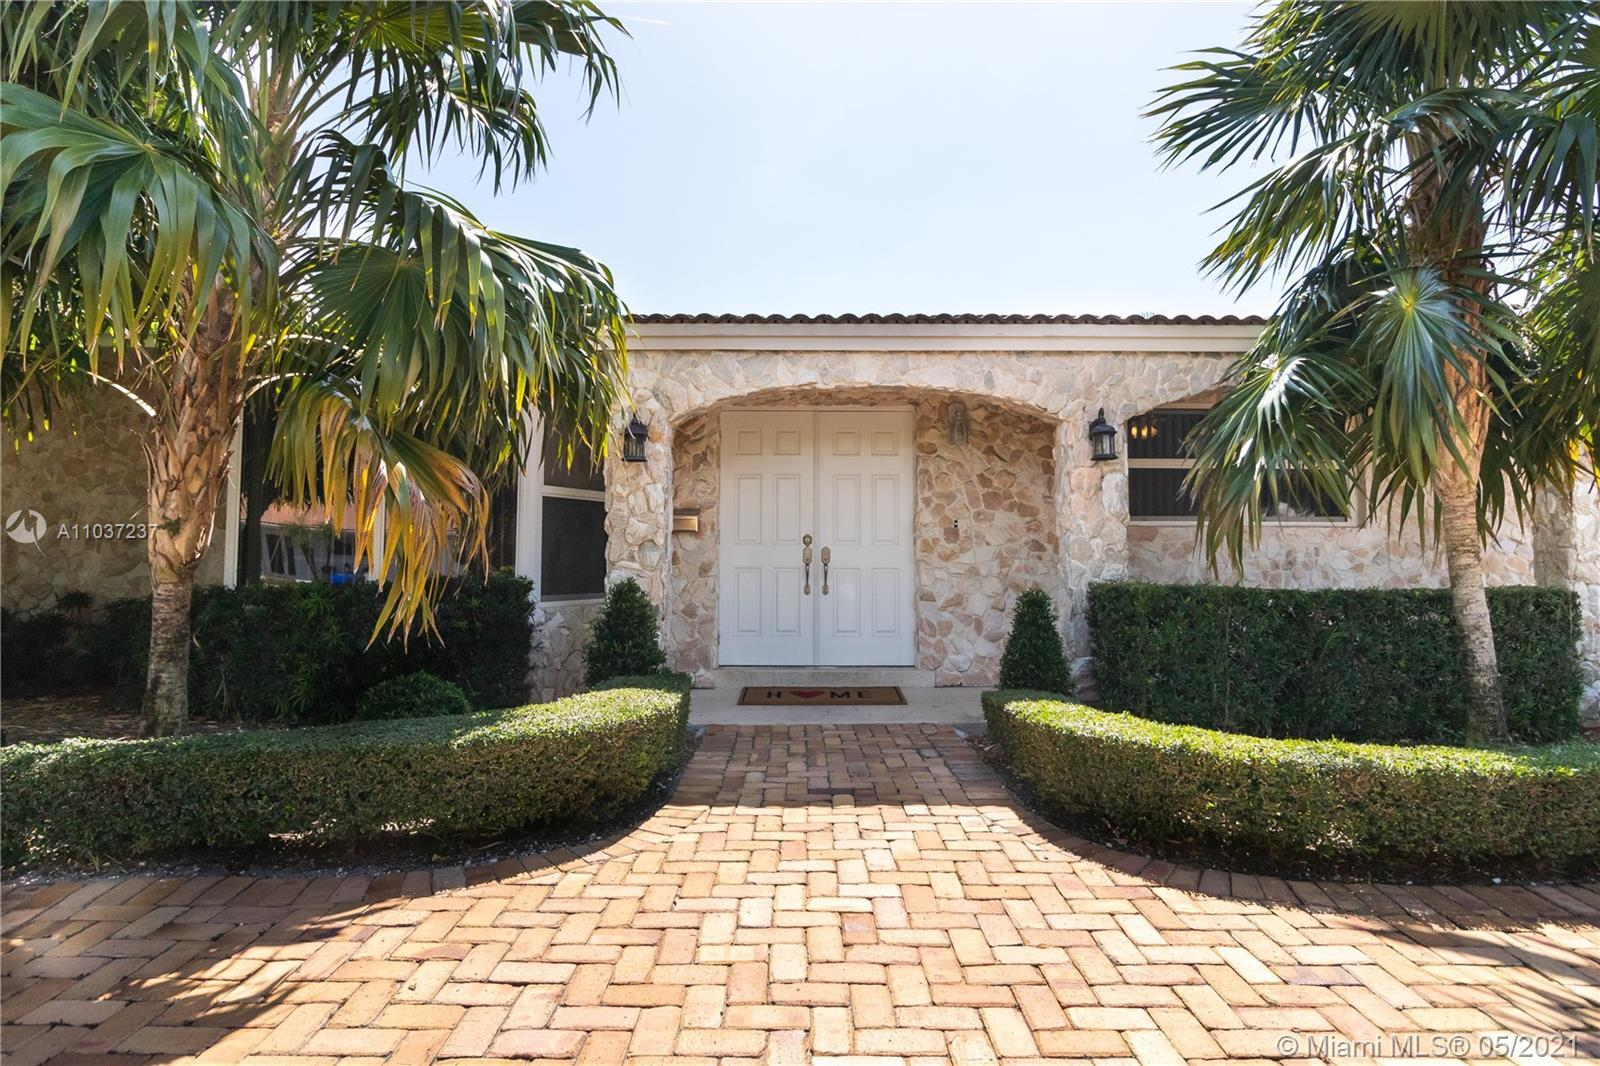 ***OPEN HOUSE SATURDAY MAY   8TH 11-3. NO APPOINTMENT NECESSARY***  Beautifully Landscaped True 4 B